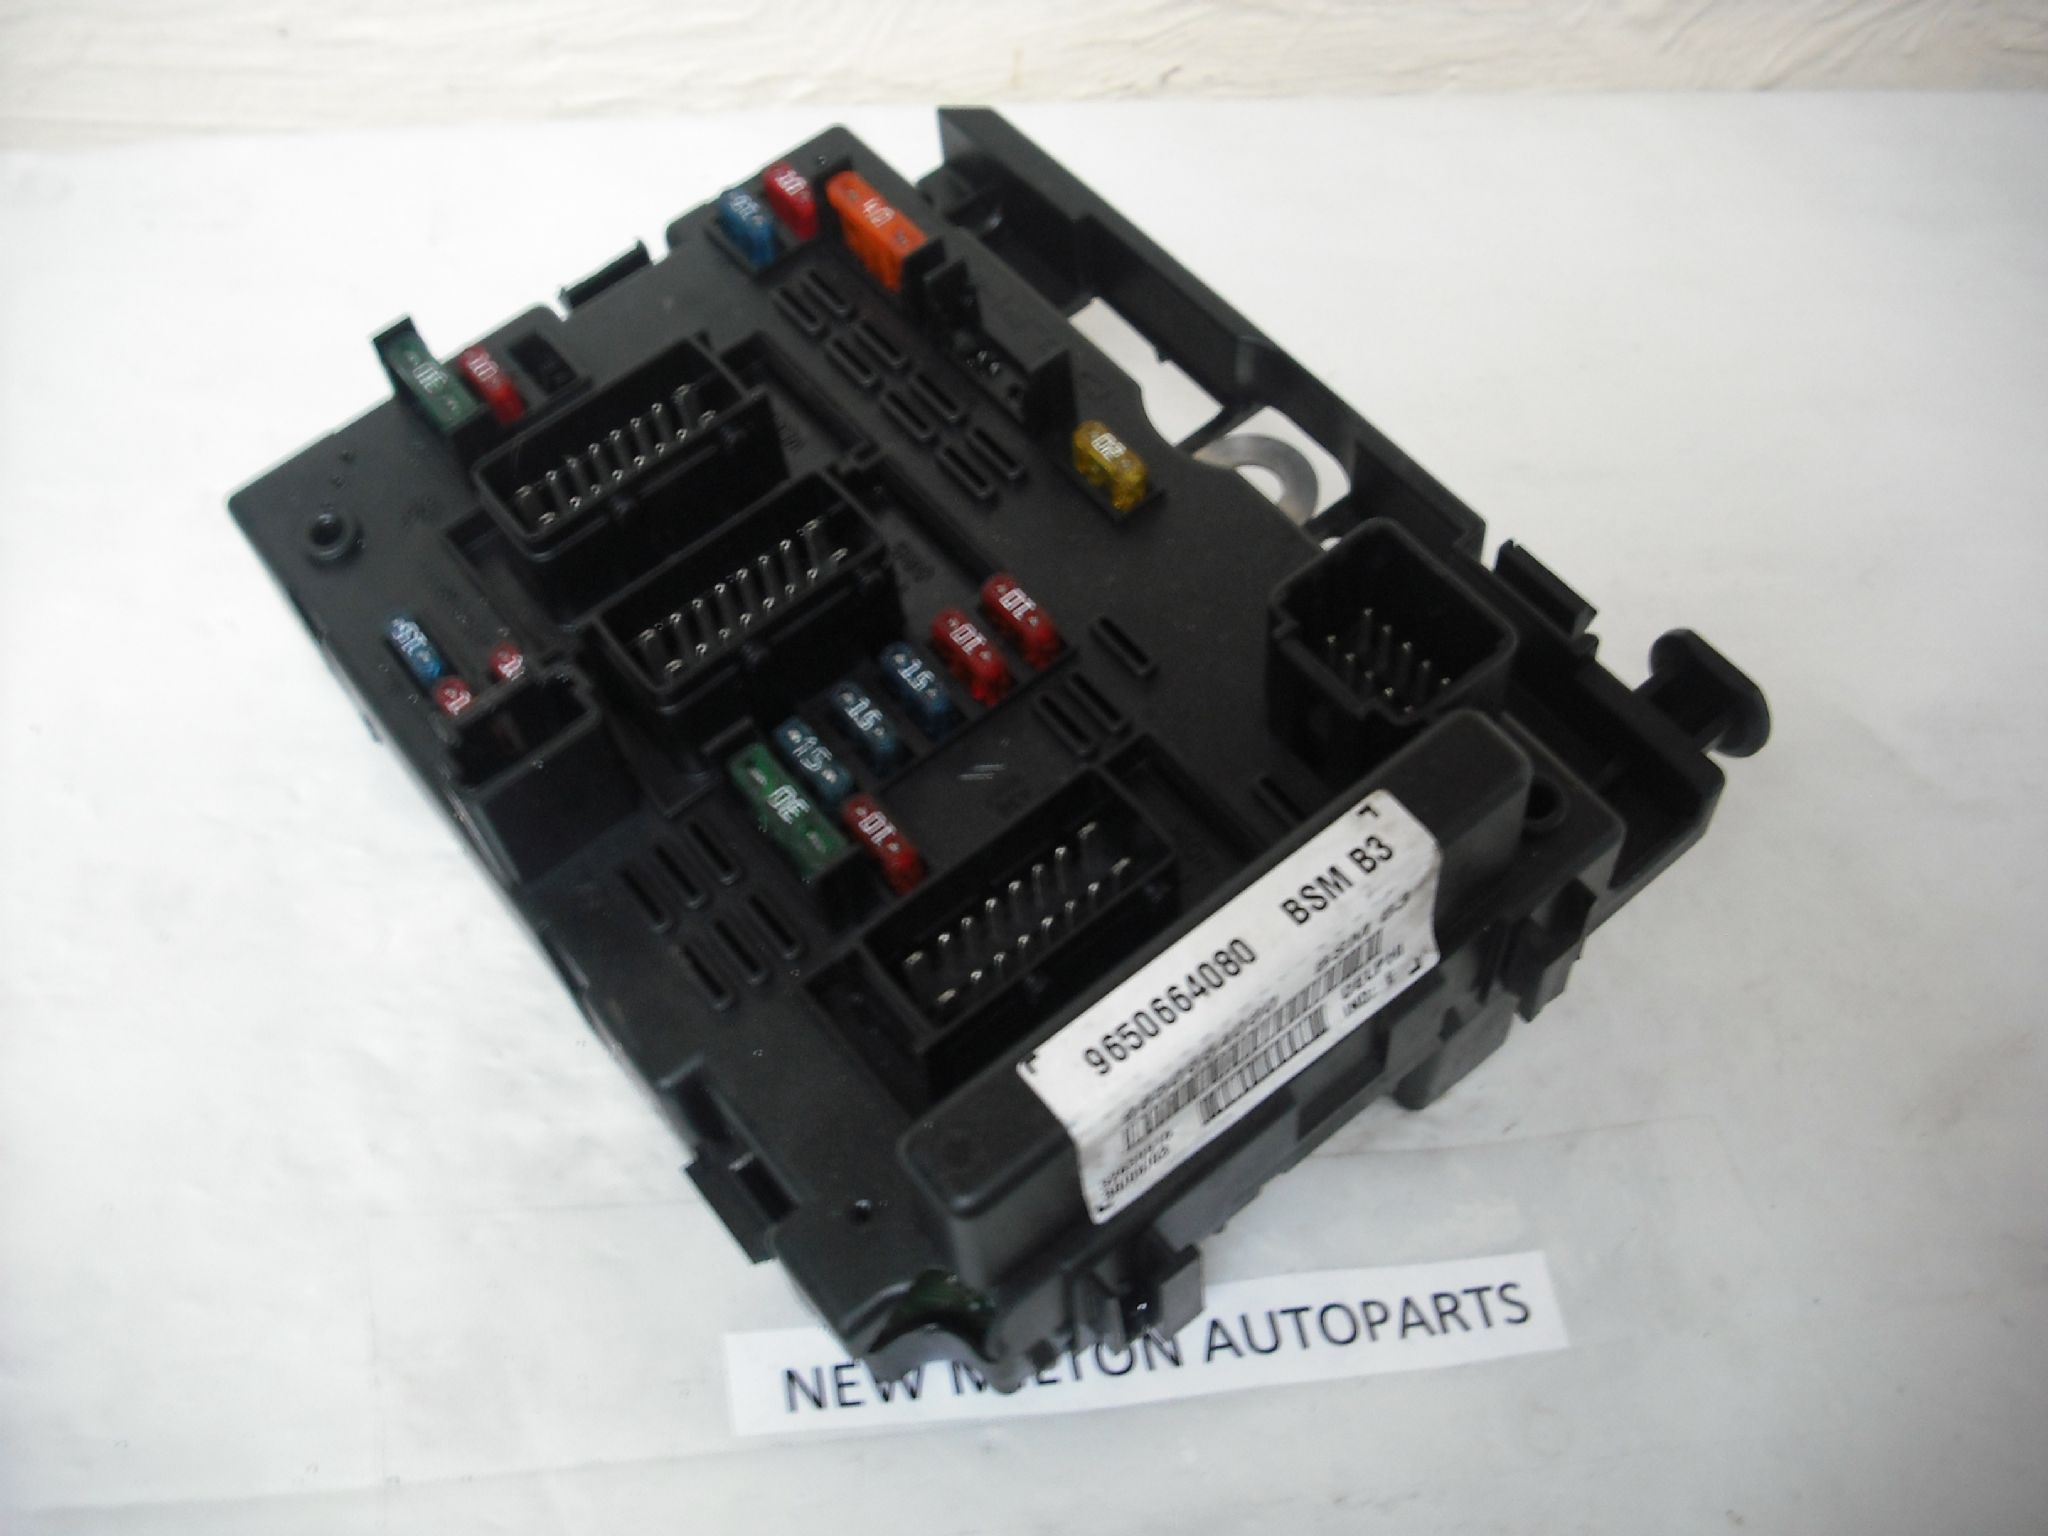 sorry out of stock ................. citroen c8 peugeot 807 fuse box controller 9650664080 bsm b3 delphi 6197 p delphi fuse box 2002 ford ranger fuse box diagram \u2022 wiring modular fuse blocks at gsmx.co